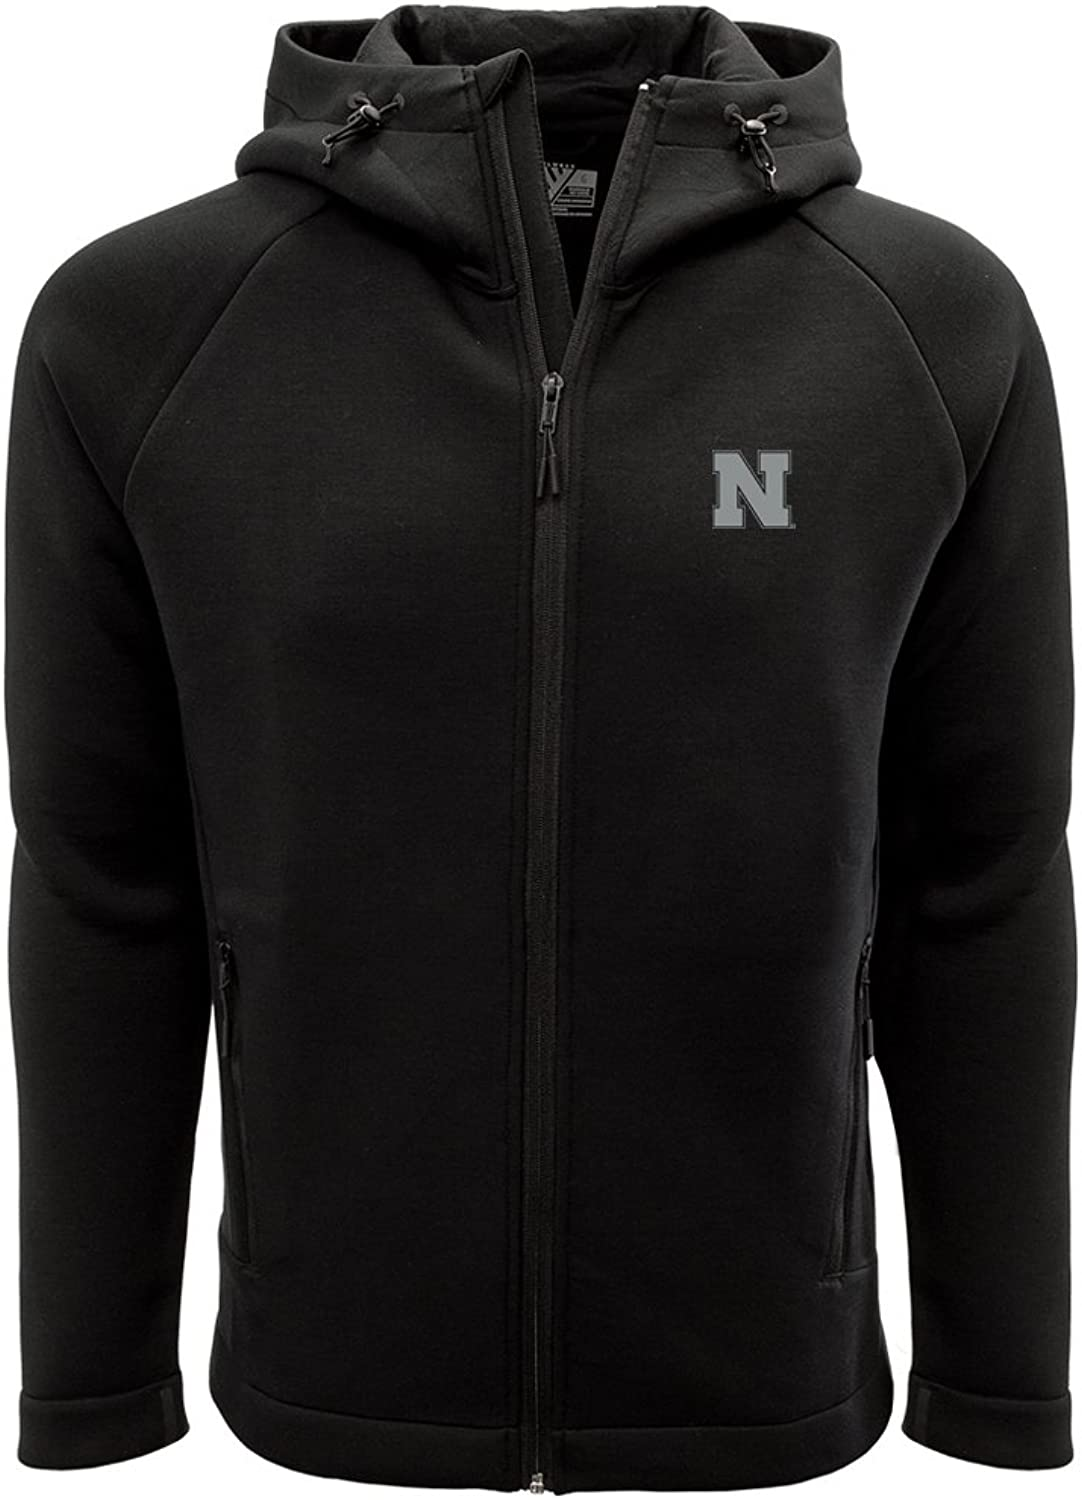 NCAA Mens Titan Insignia Strong Style Full Zip Hooded Jacket